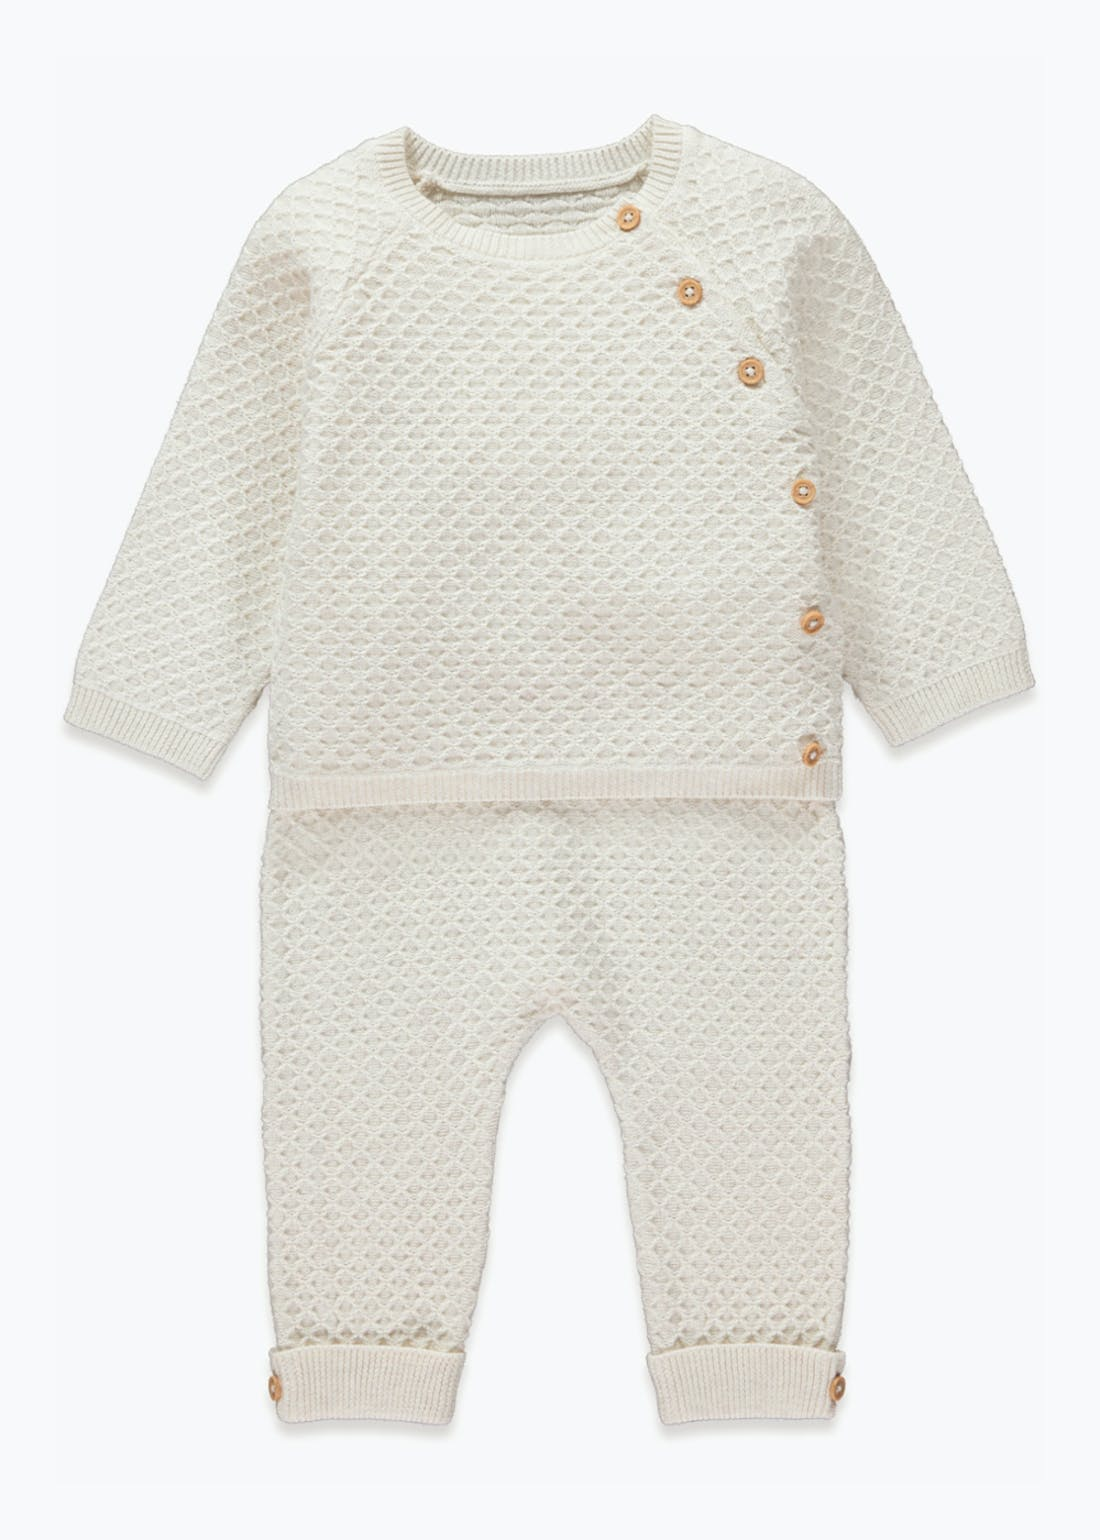 Unisex Knitted Set (Tiny Baby-23mths)